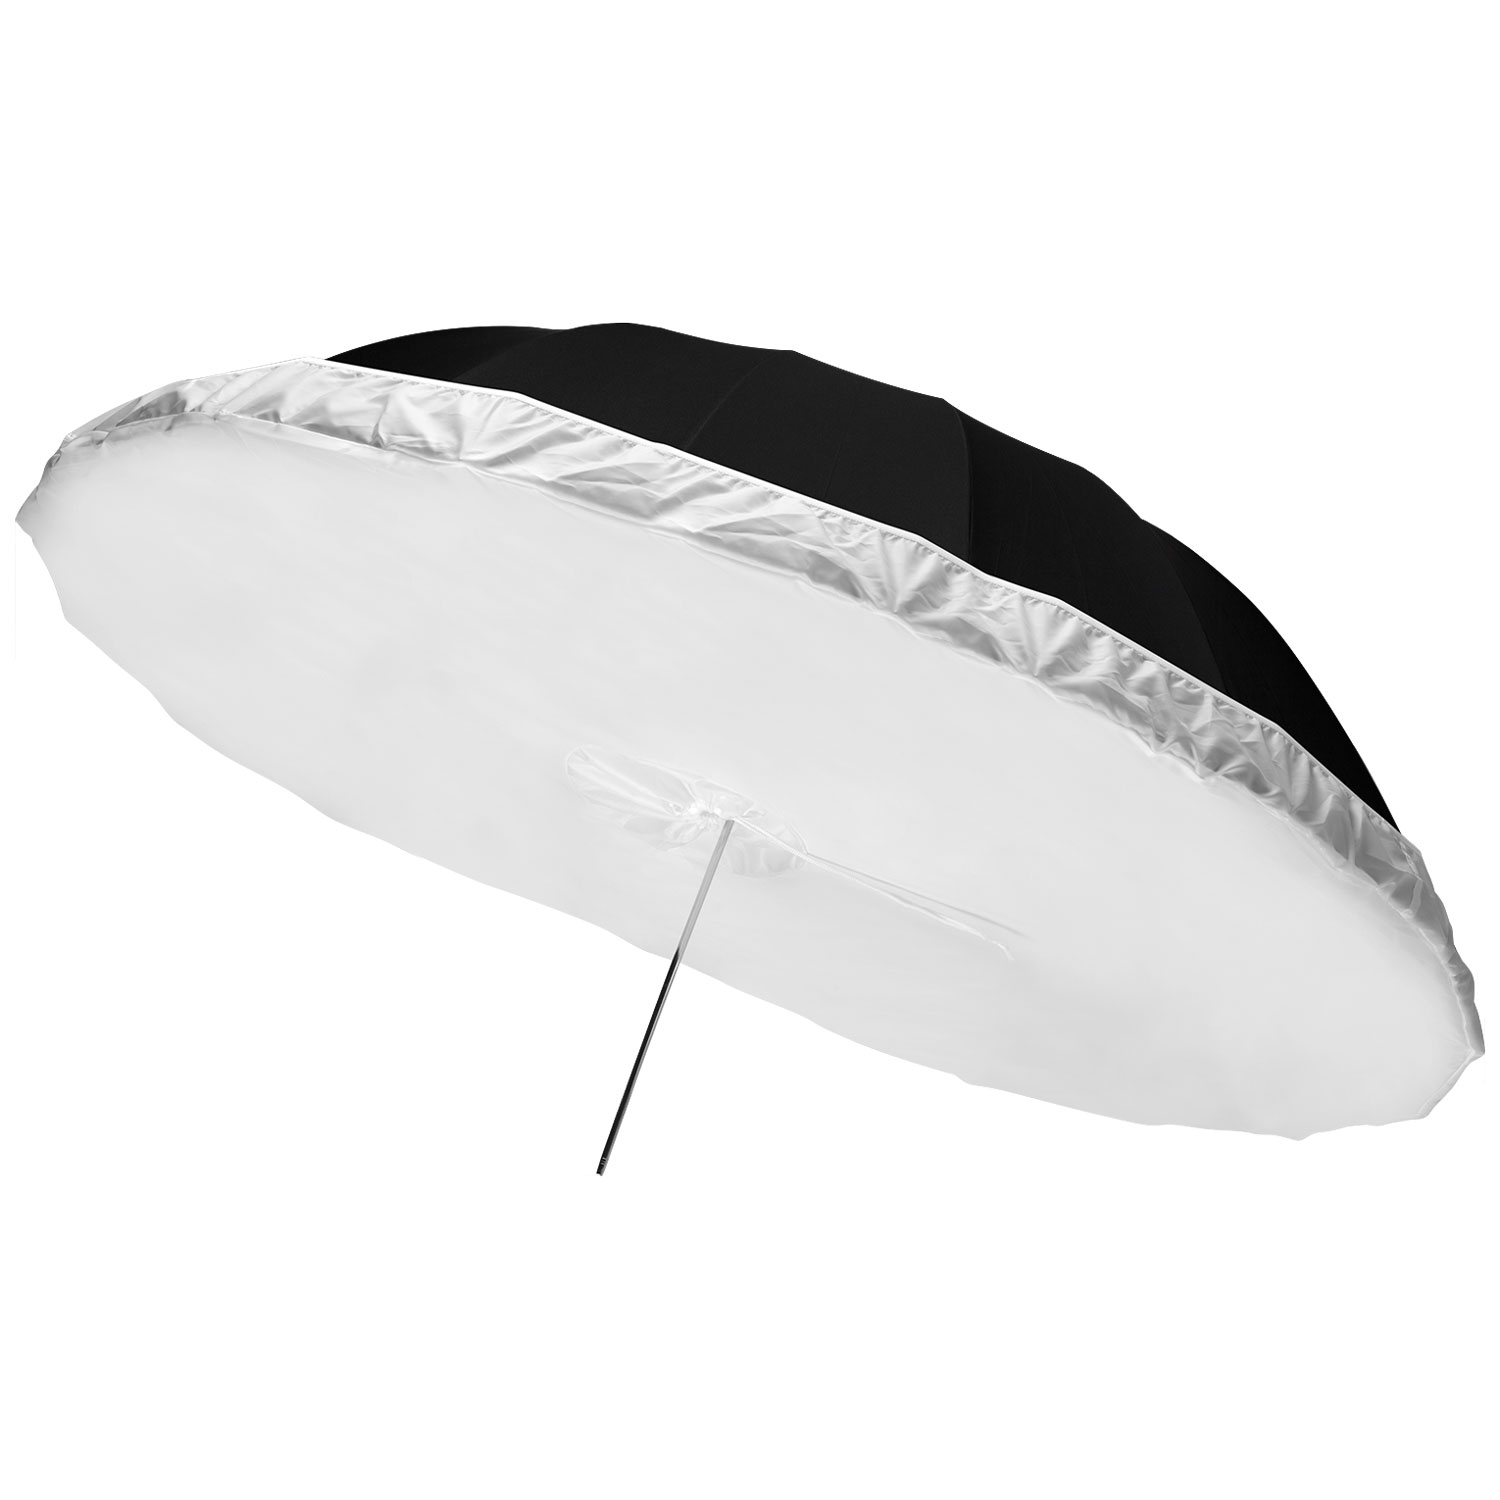 Full-Stop Diffusion Fabric for 7' Umbrella